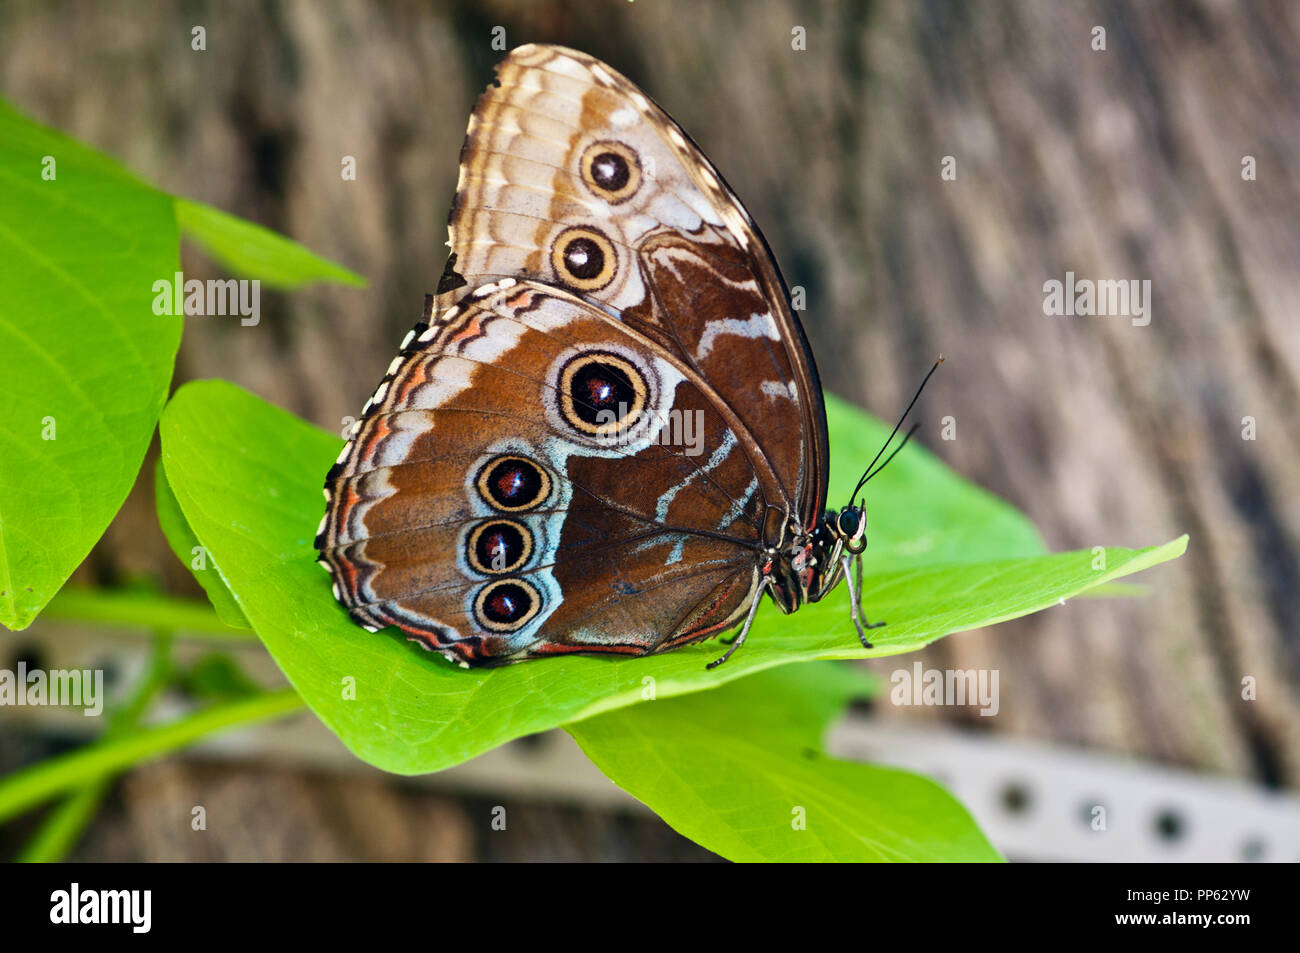 Ventral view of blue morpho butterfly wing (Morpho peleides) in the butterfly display at the Boise City Zoo in Boise Idaho - Stock Image